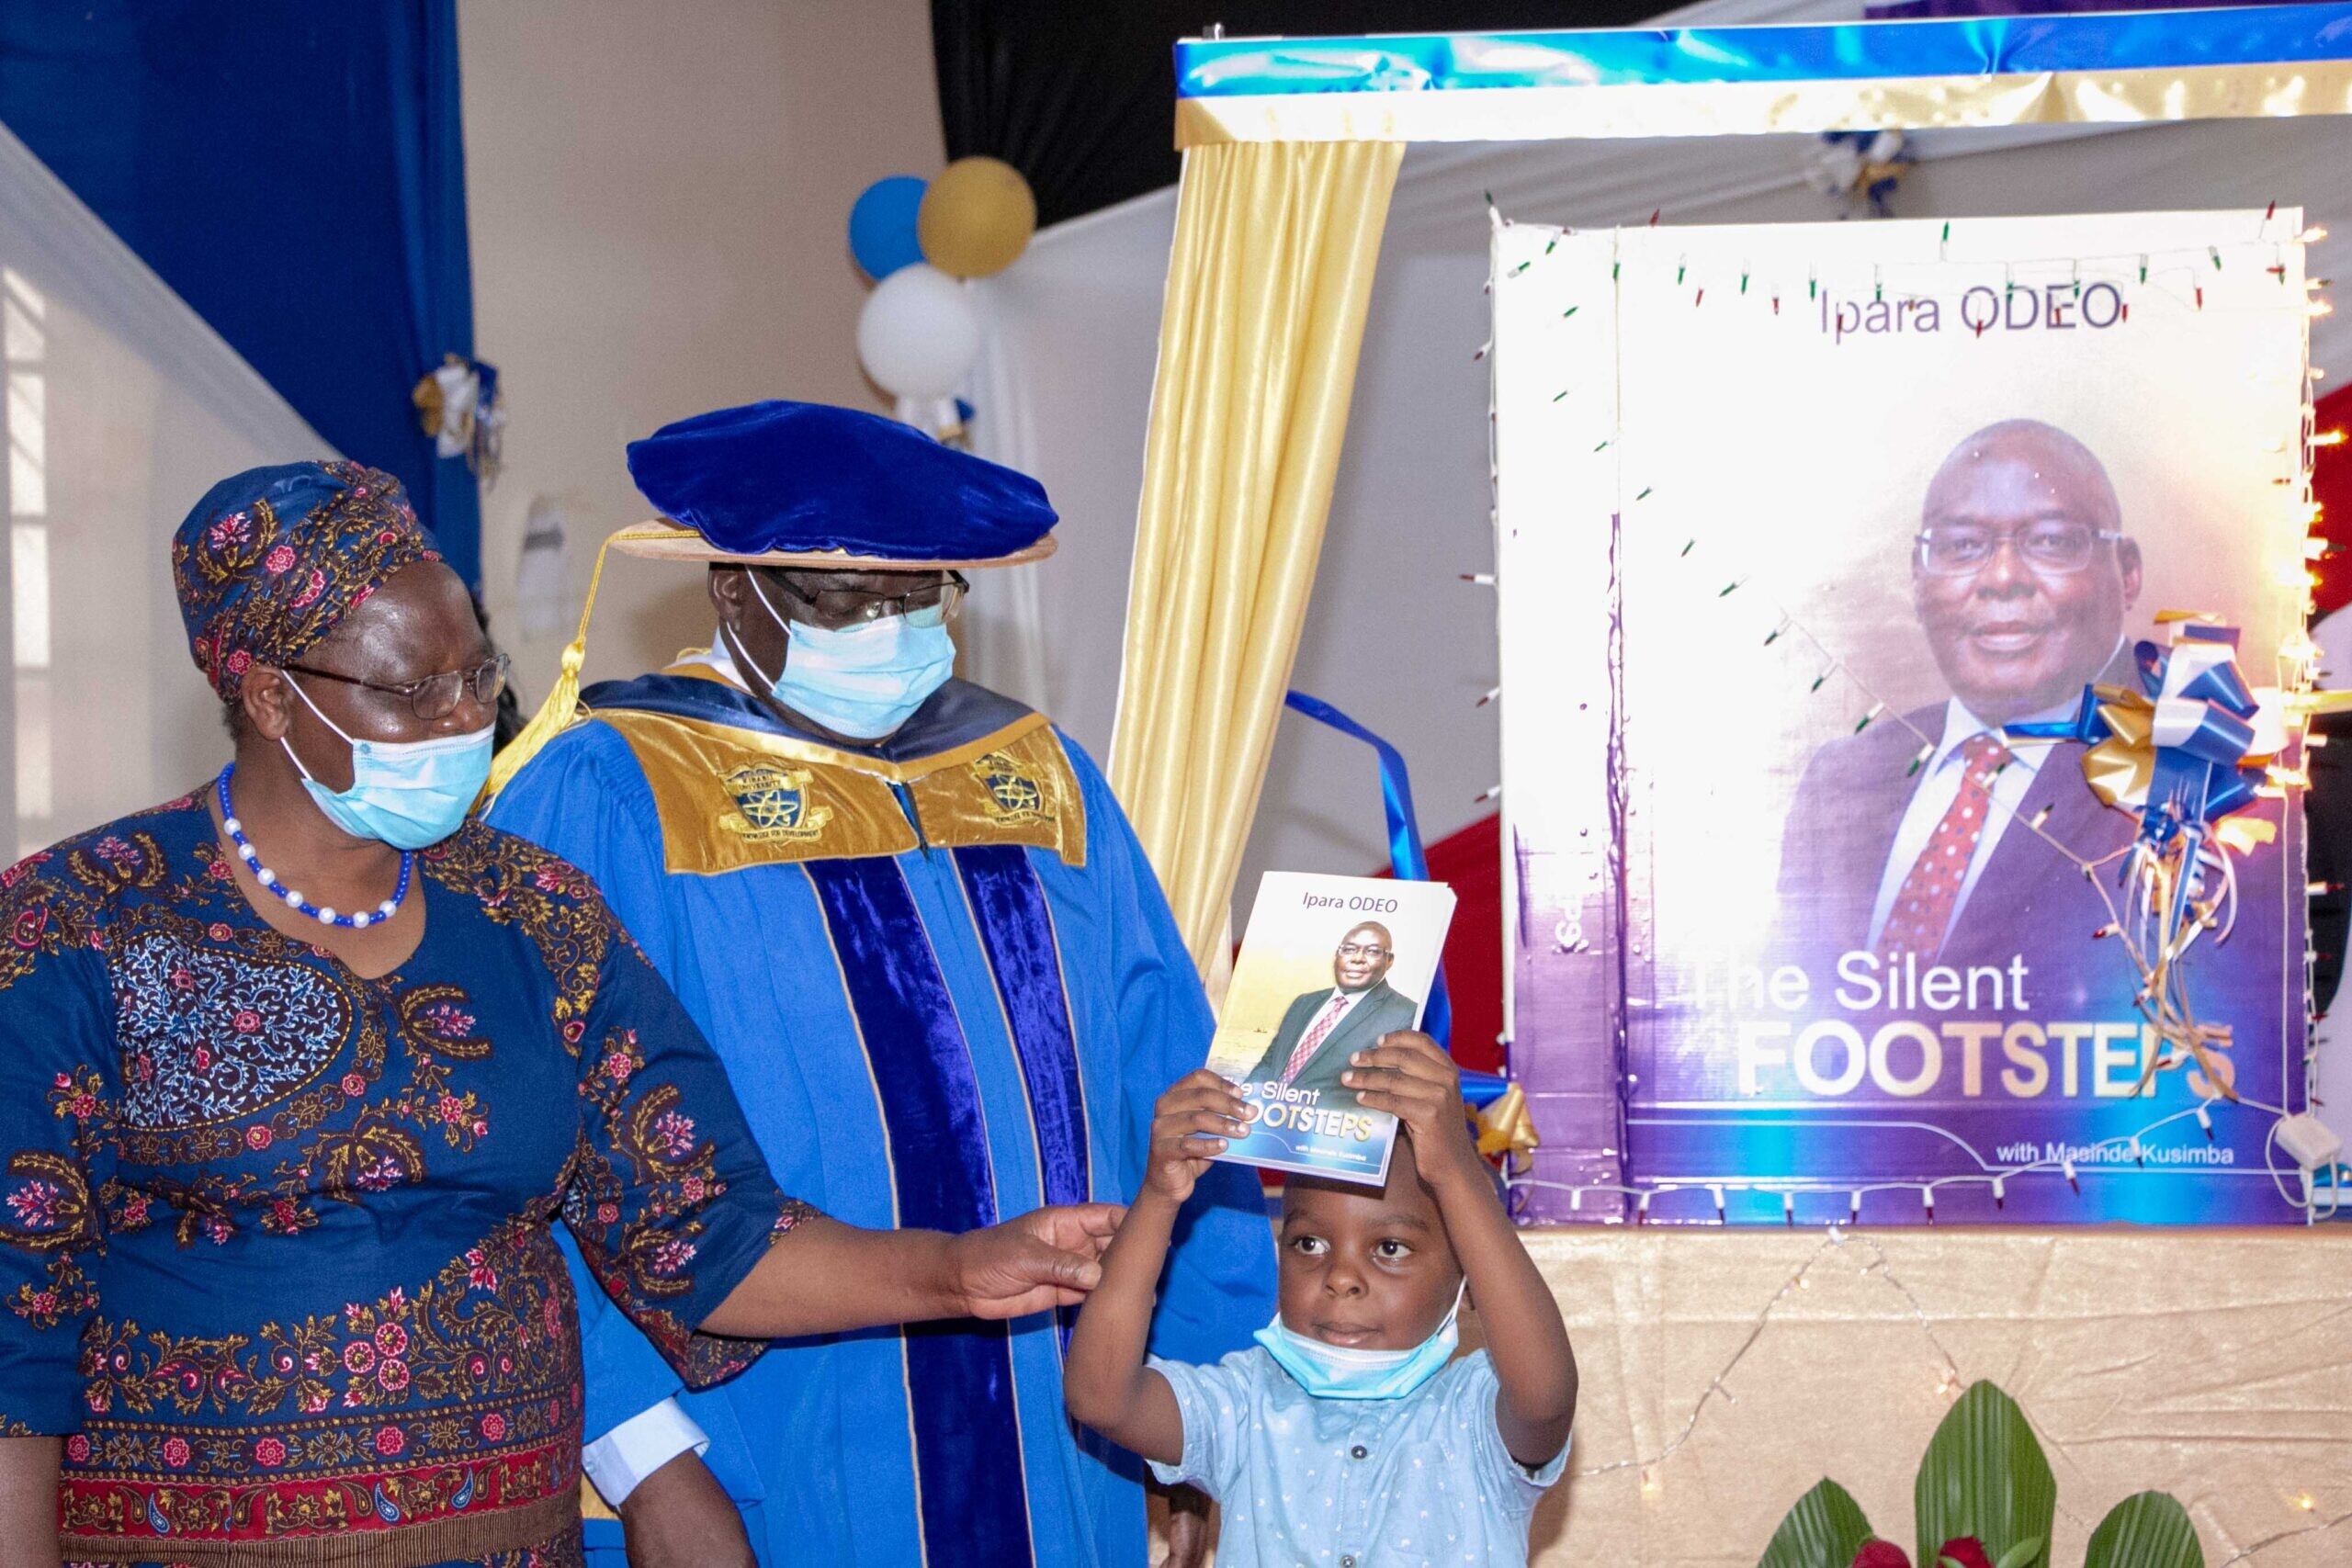 Public Lecture and Book Launch By Prof. Isaac Ipara Odeo